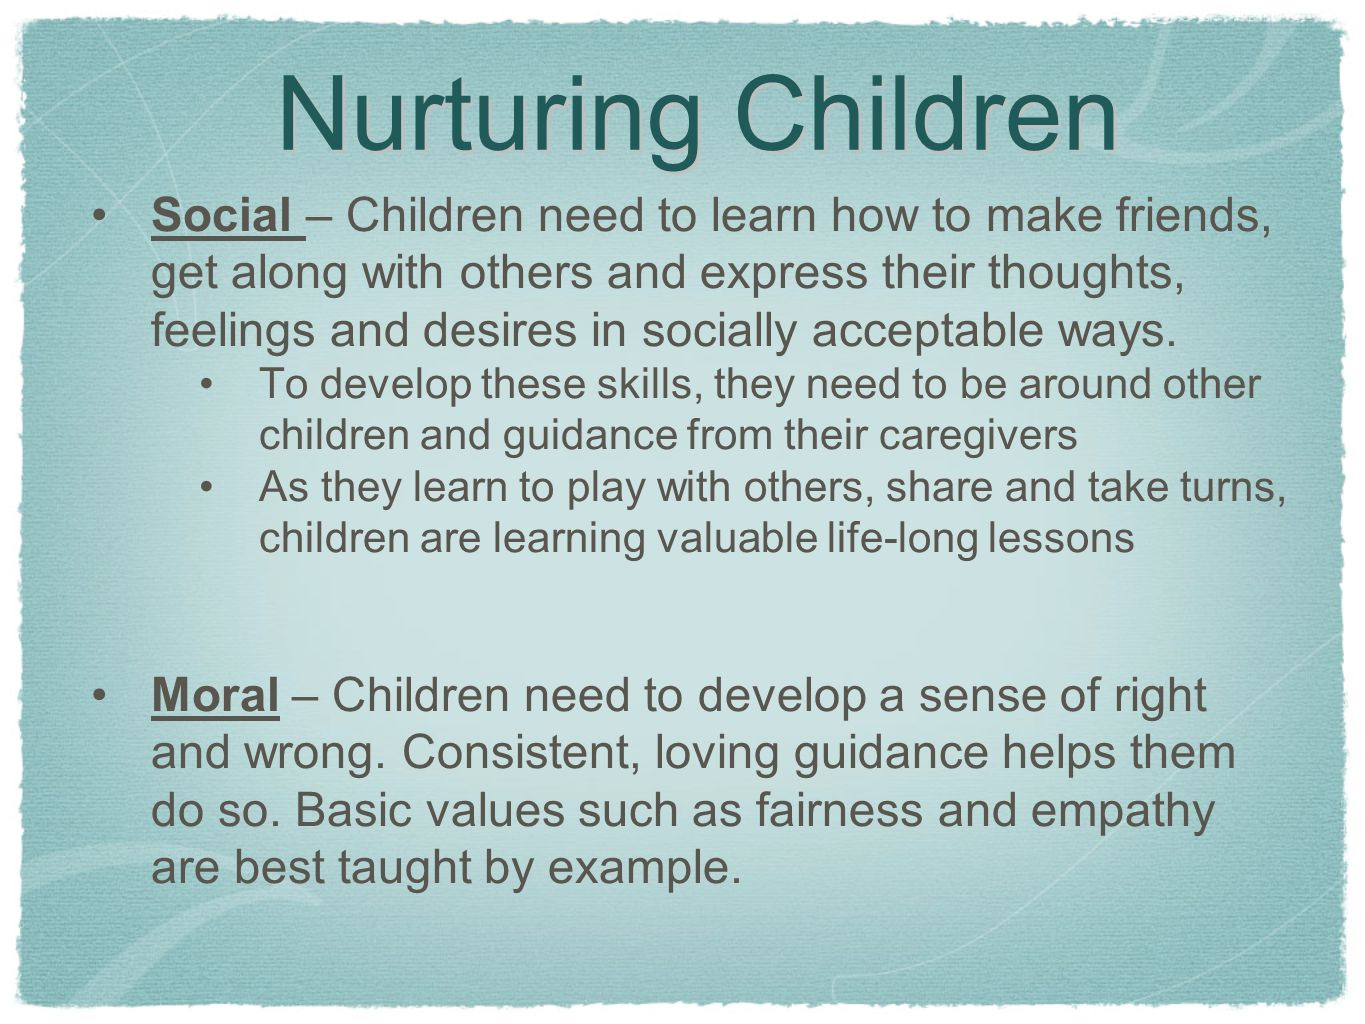 Nurturing Children Social – Children need to learn how to make friends, get along with others and express their thoughts, feelings and desires in socially acceptable ways.